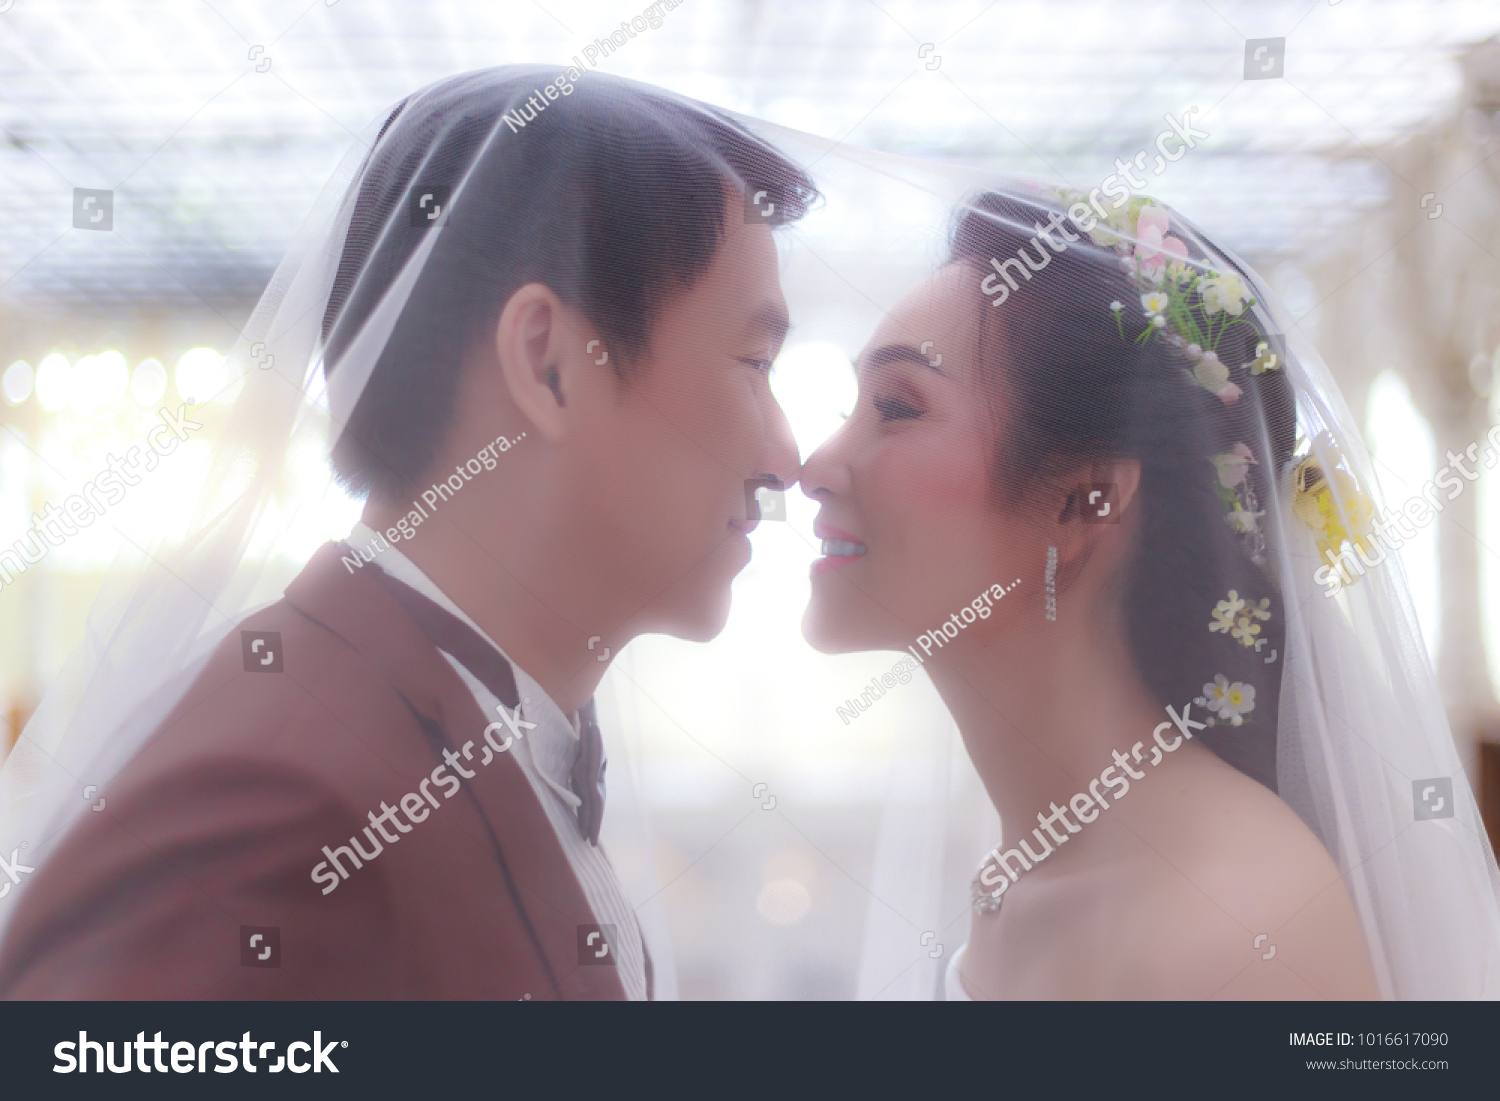 https://image.shutterstock.com/z/stock-photo-beautiful-asian-bride-get-married-with-handsome-asian-bloom-they-feel-happy-attractive-guy-is-1016617090.jpg